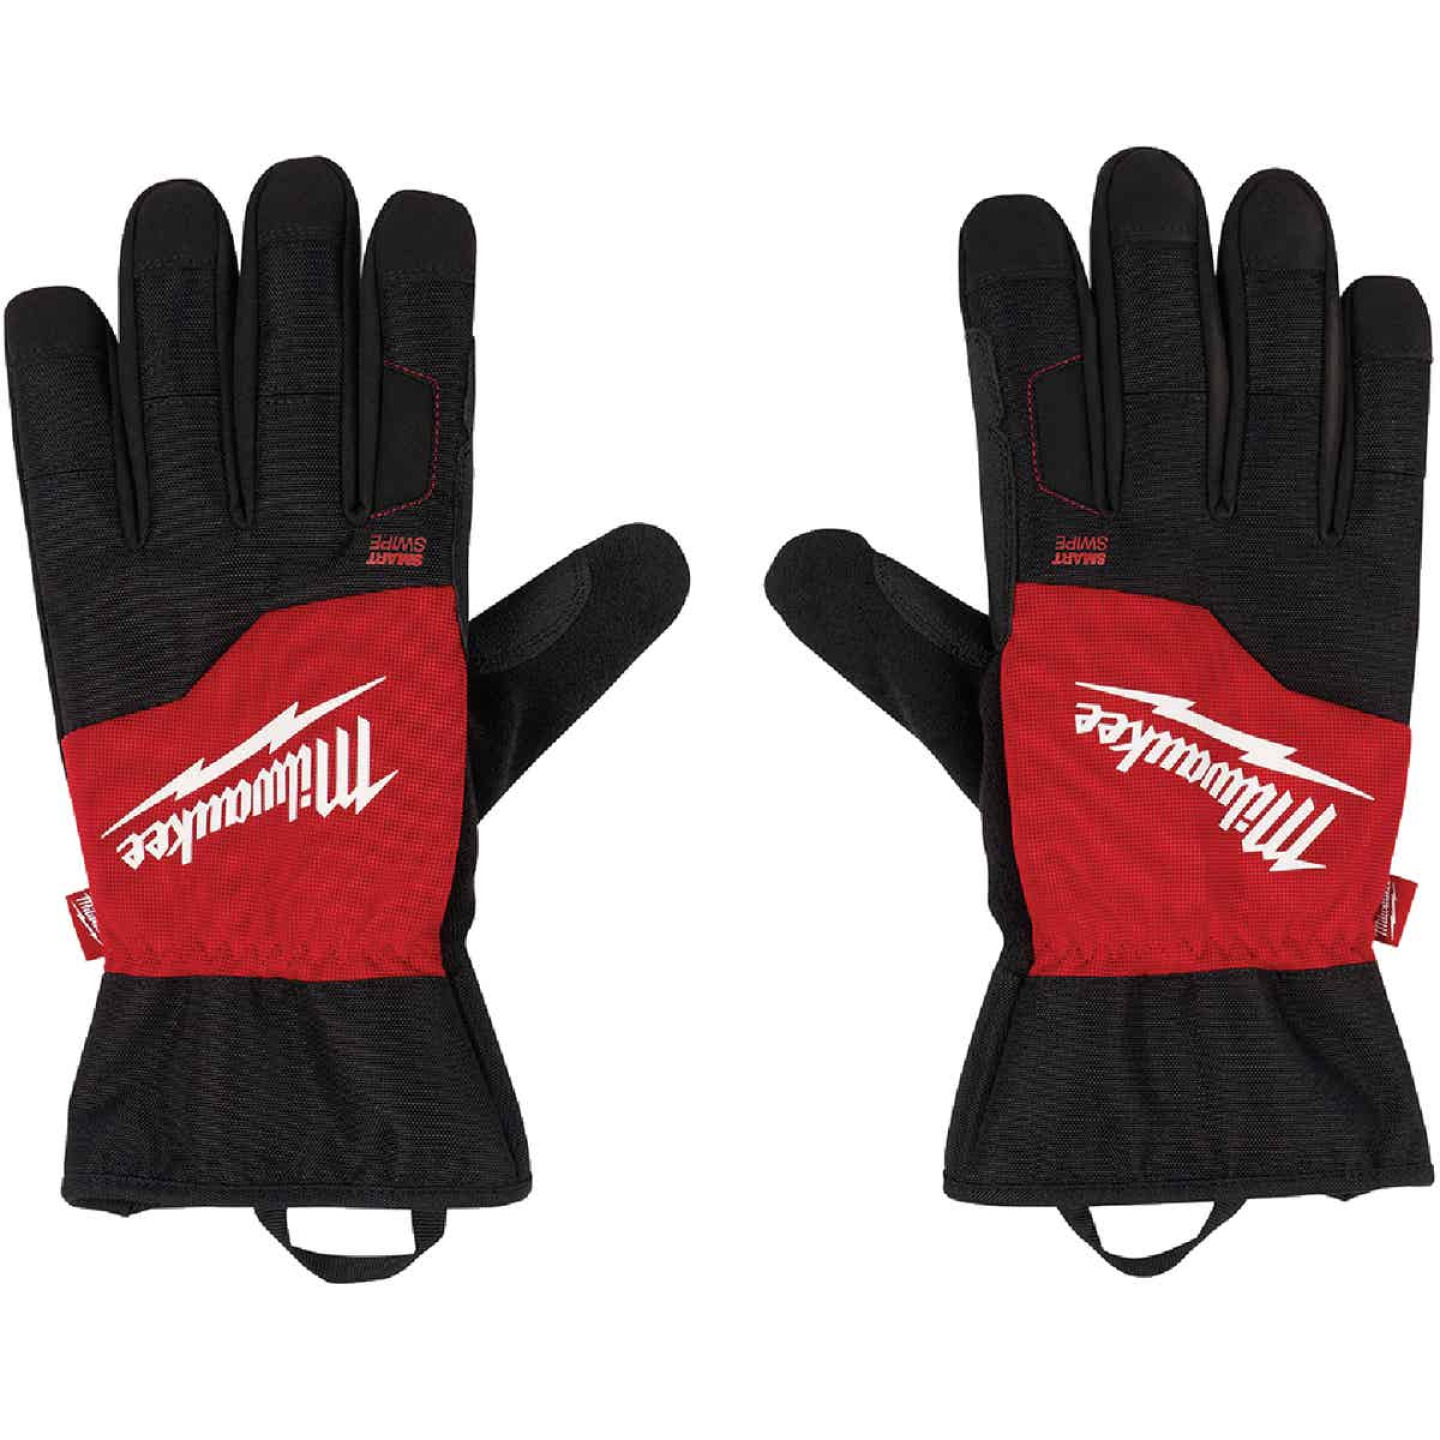 Milwaukee Men's Medium Nylon Winter Performance Glove Image 4